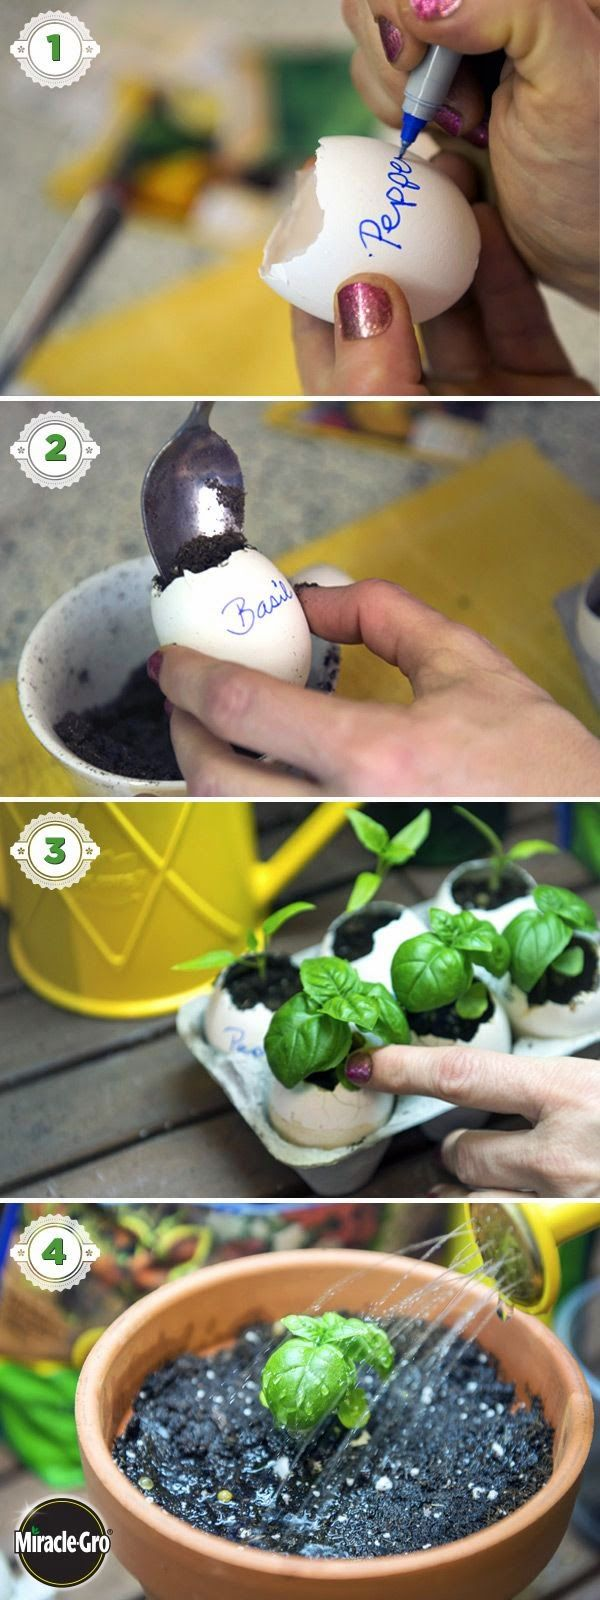 Learn how to grow your own seeds indoors using eggshells